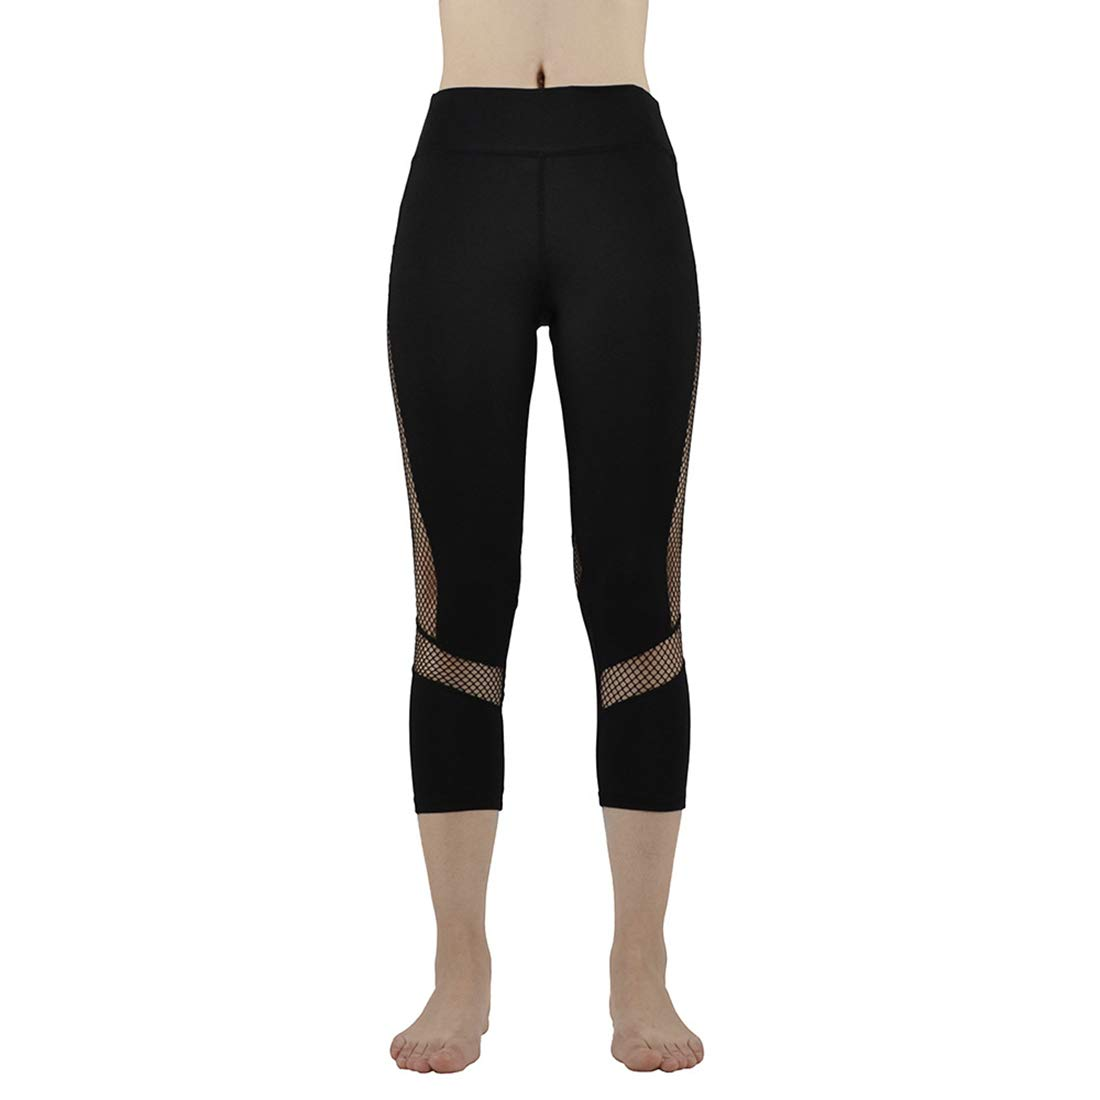 KEVIN POOLE Yoga Pants Slim High Speed Slim QuickDrying Running Pants for Women (Size   S)